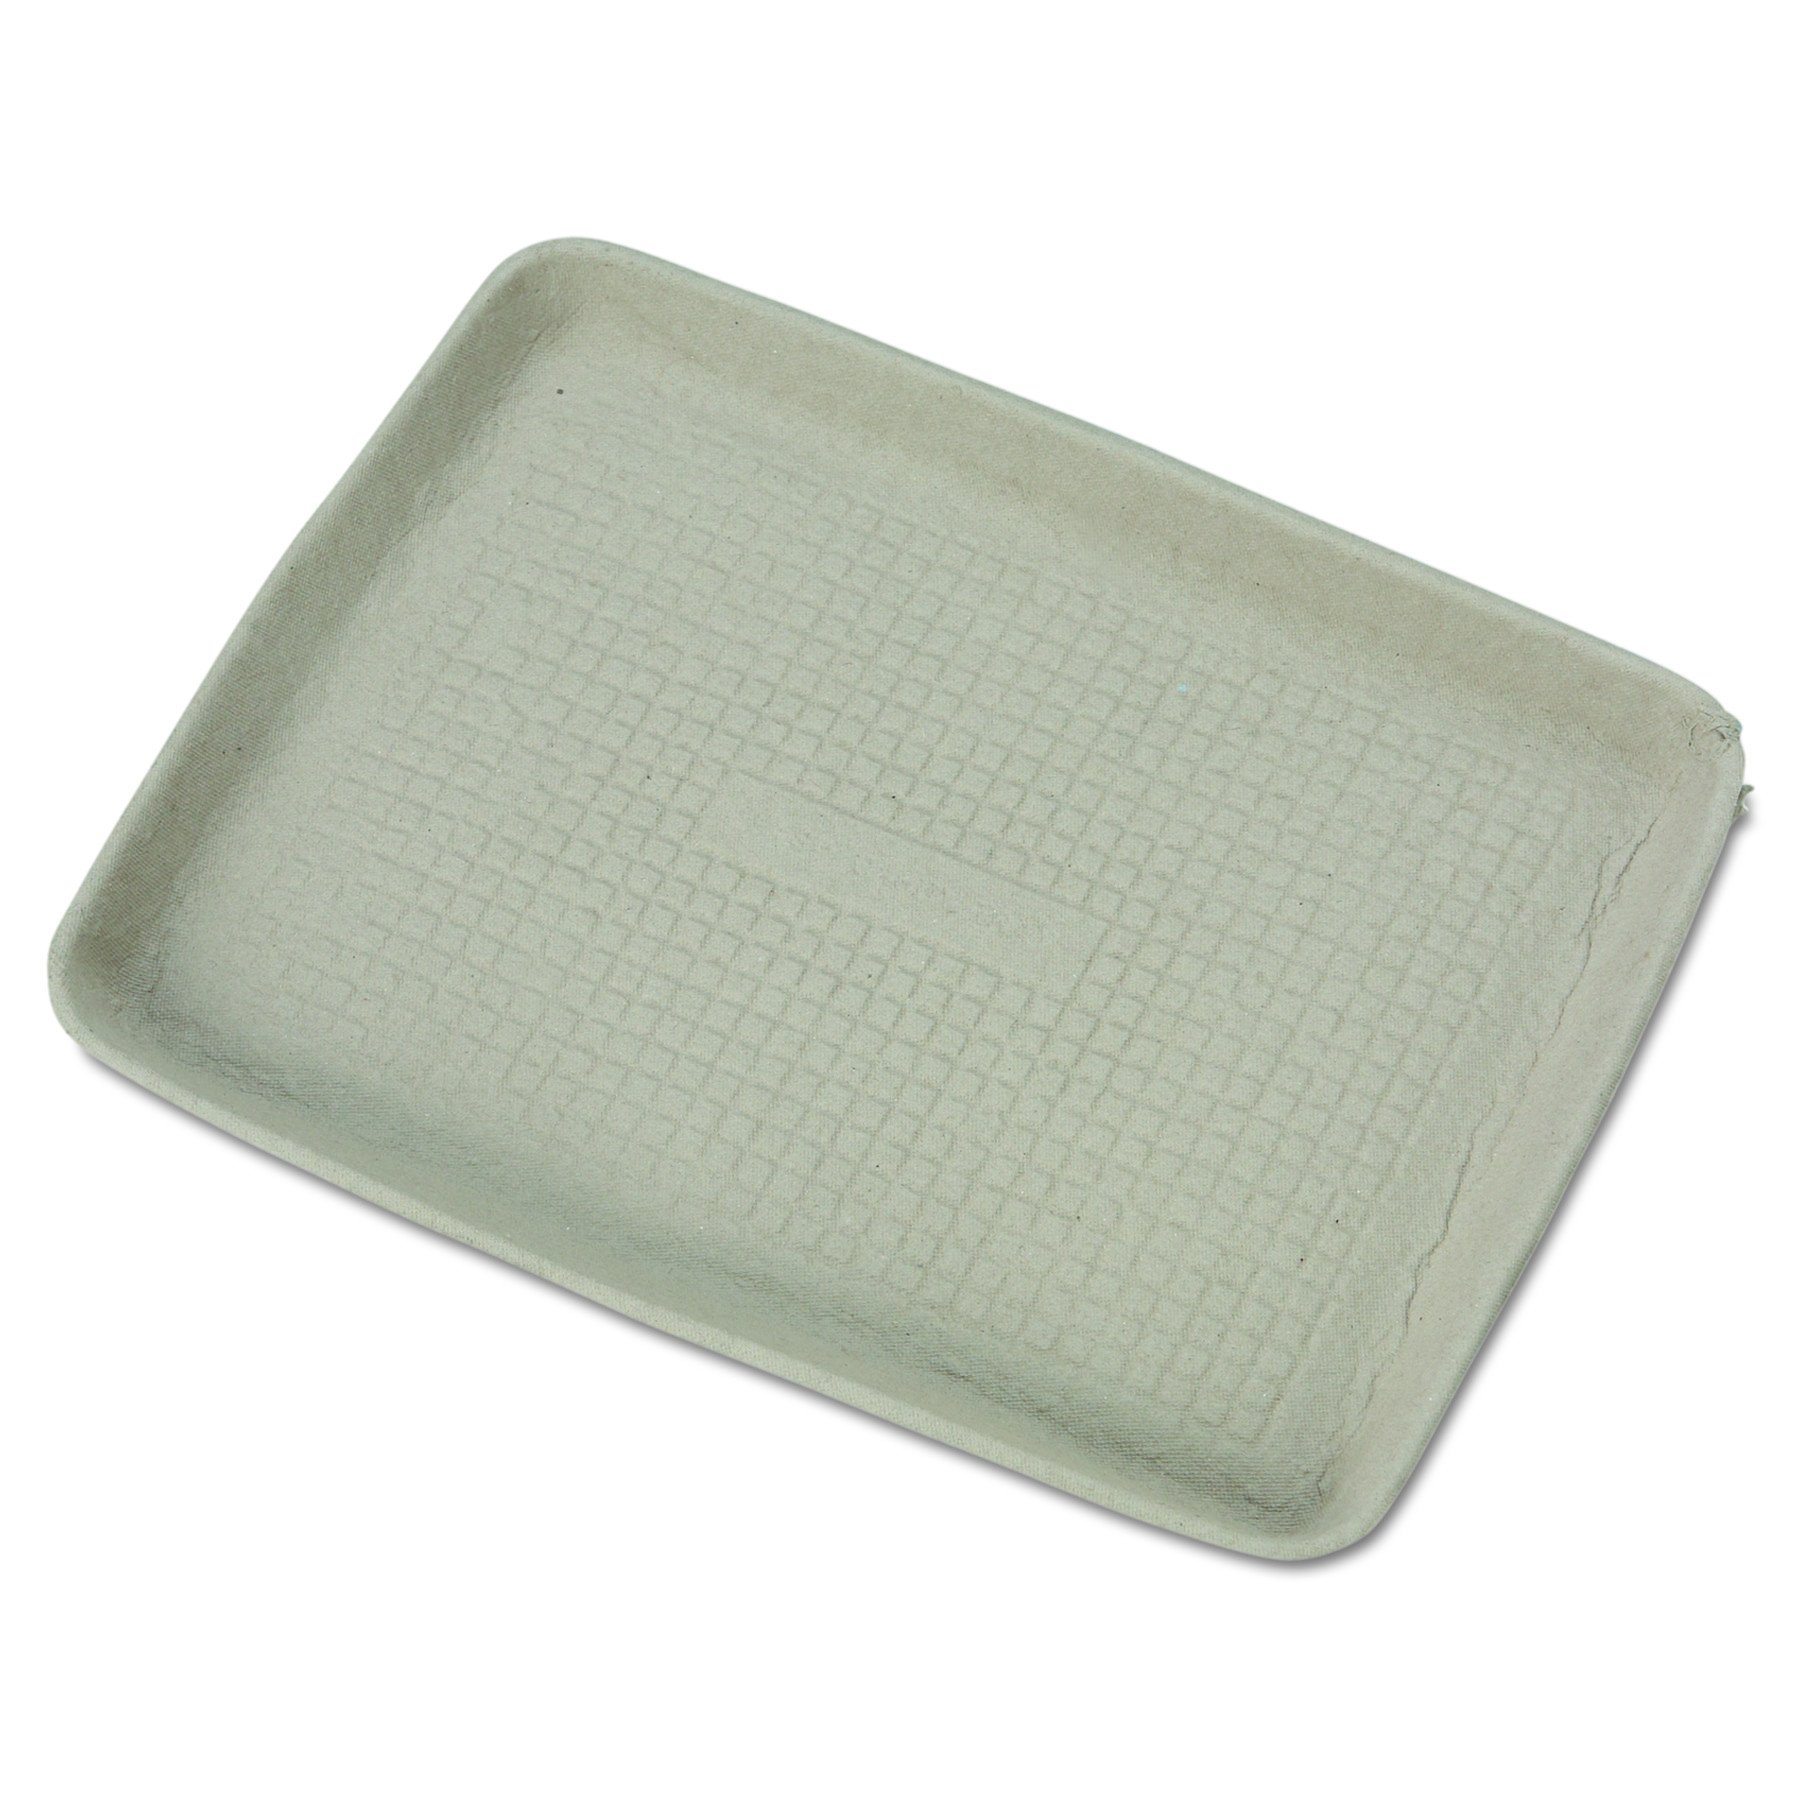 Chinet 20815 StrongHolder Molded Fiber Food Trays, 9 x 12 x 1, Beige, Rectangular (Case of 250)